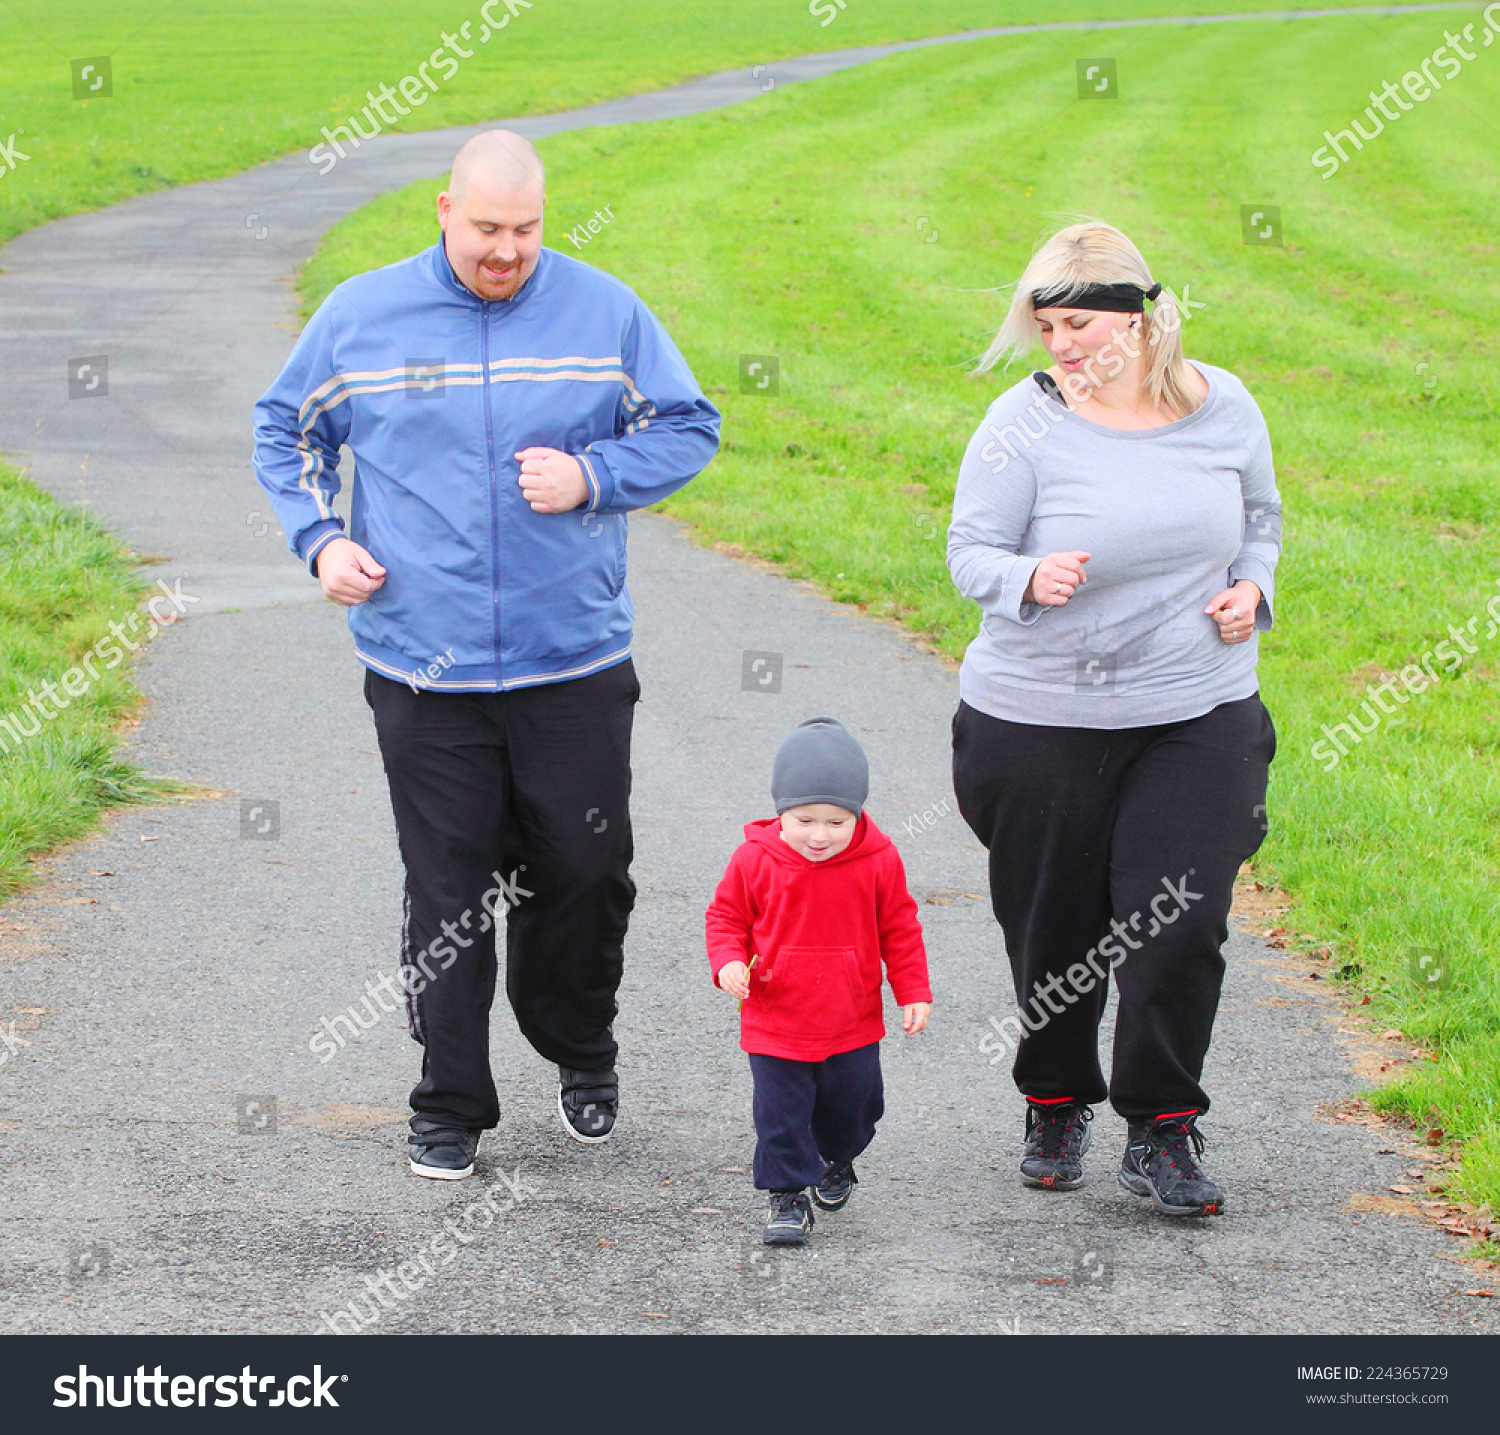 Are overweight people worse parents?   Overweight Dad